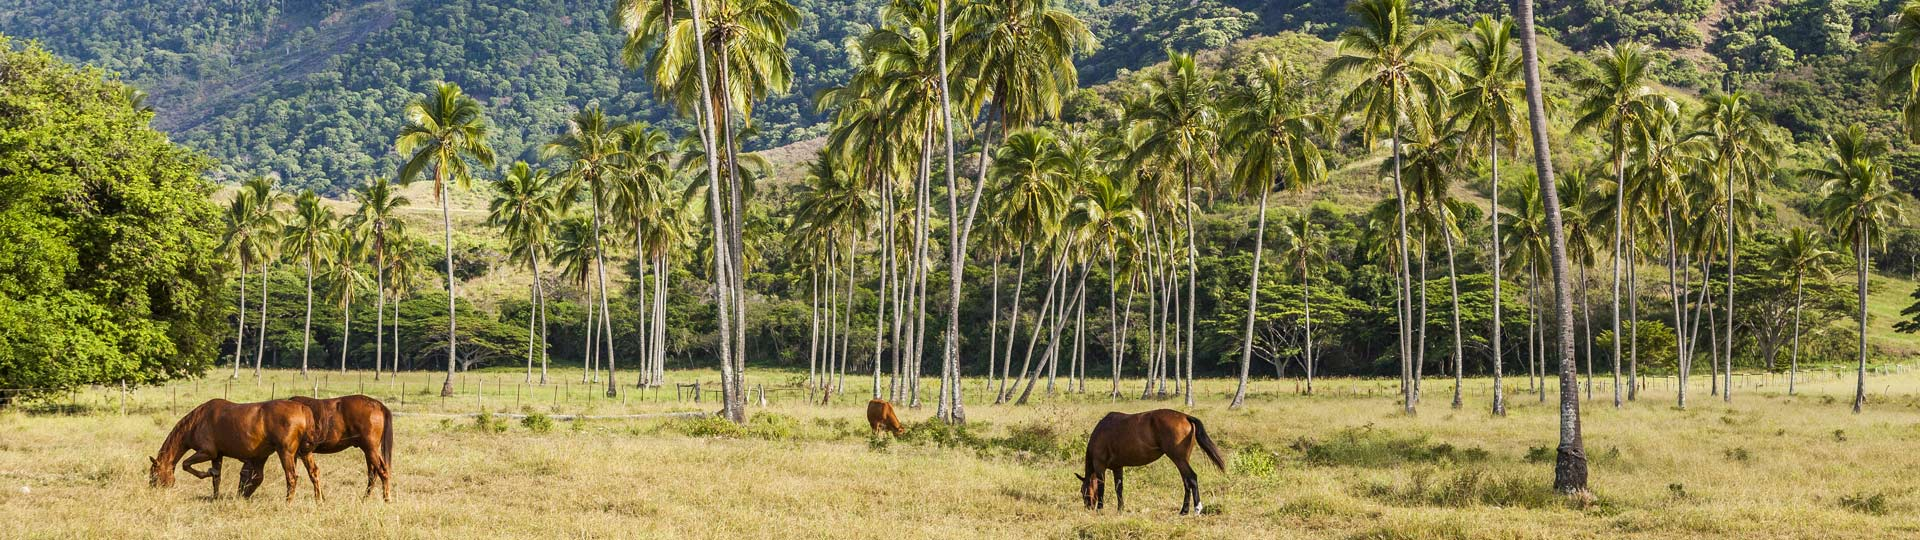 Horse in Bourail, New Caledonia